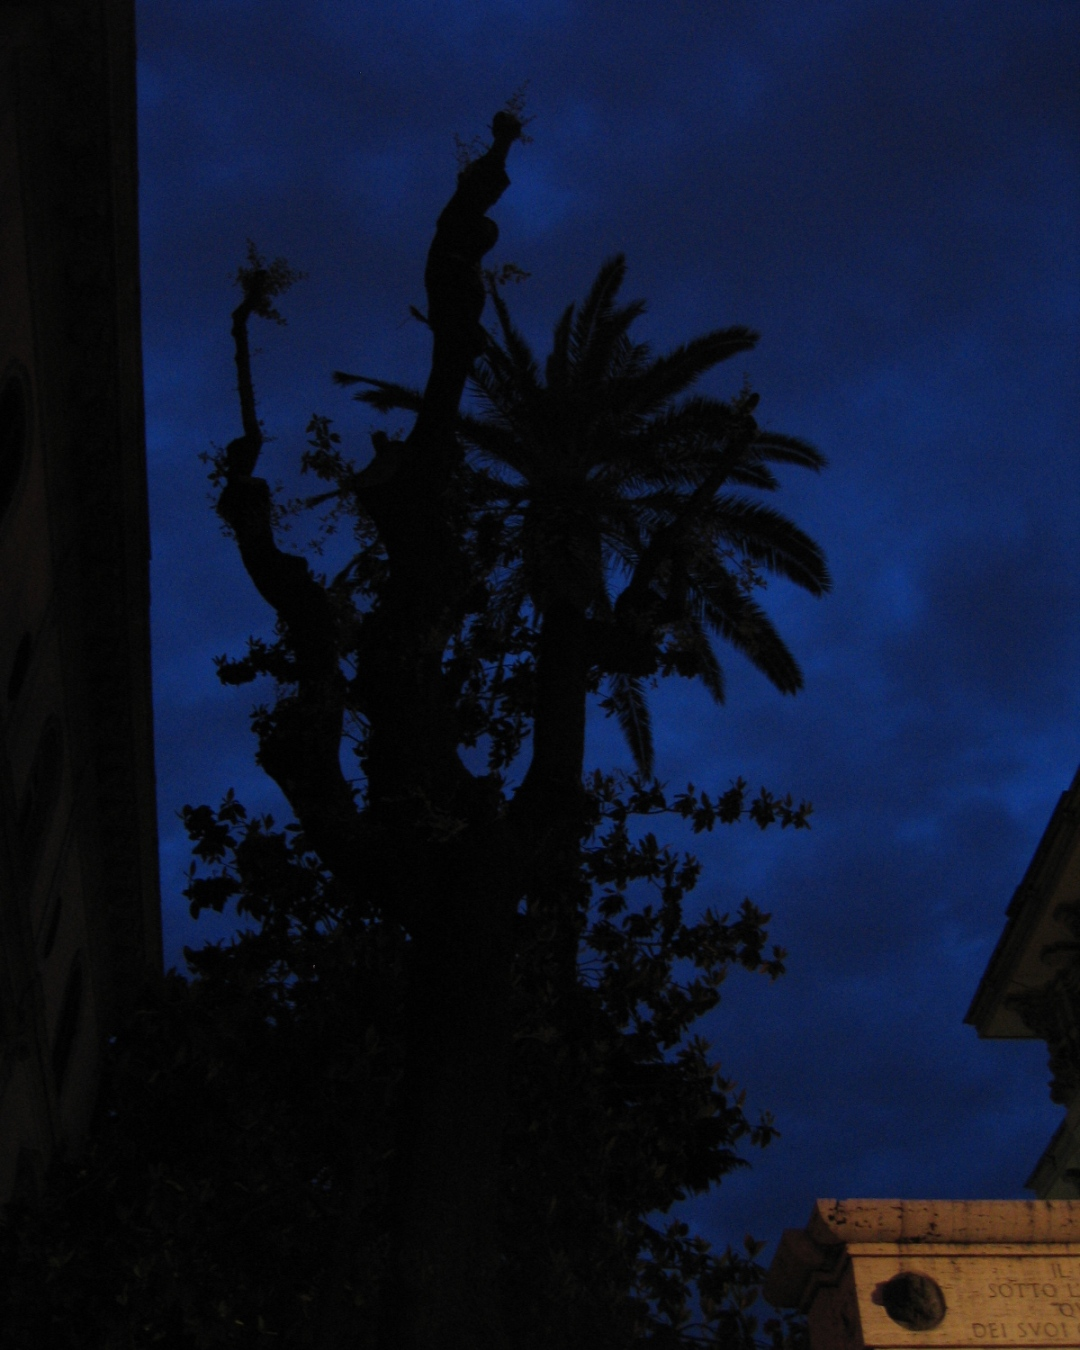 Rome night sky with architecture and tree at 20:15 on the 15th May 2009. Photography by tony0.